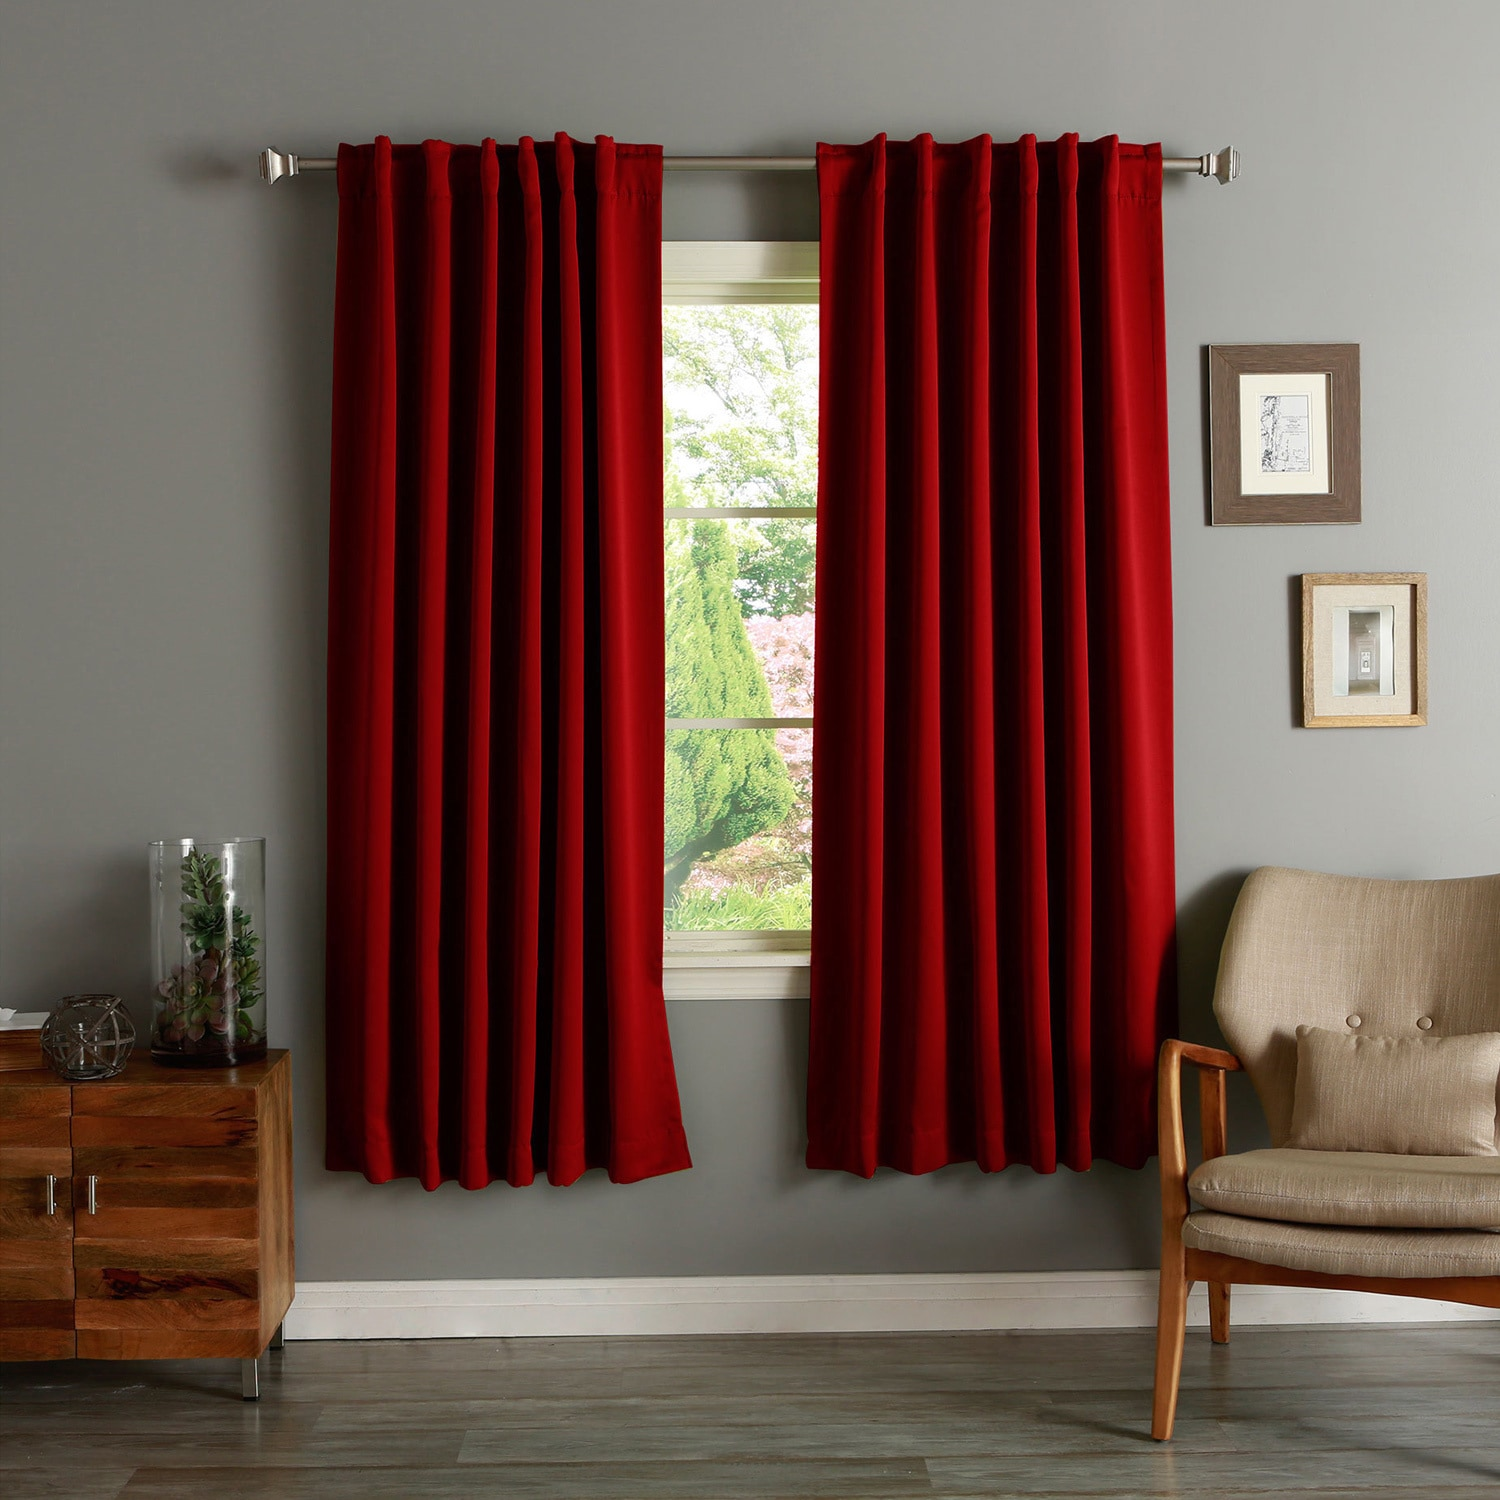 Cheap Black Curtains 90X90 Natural Blackout Curtains